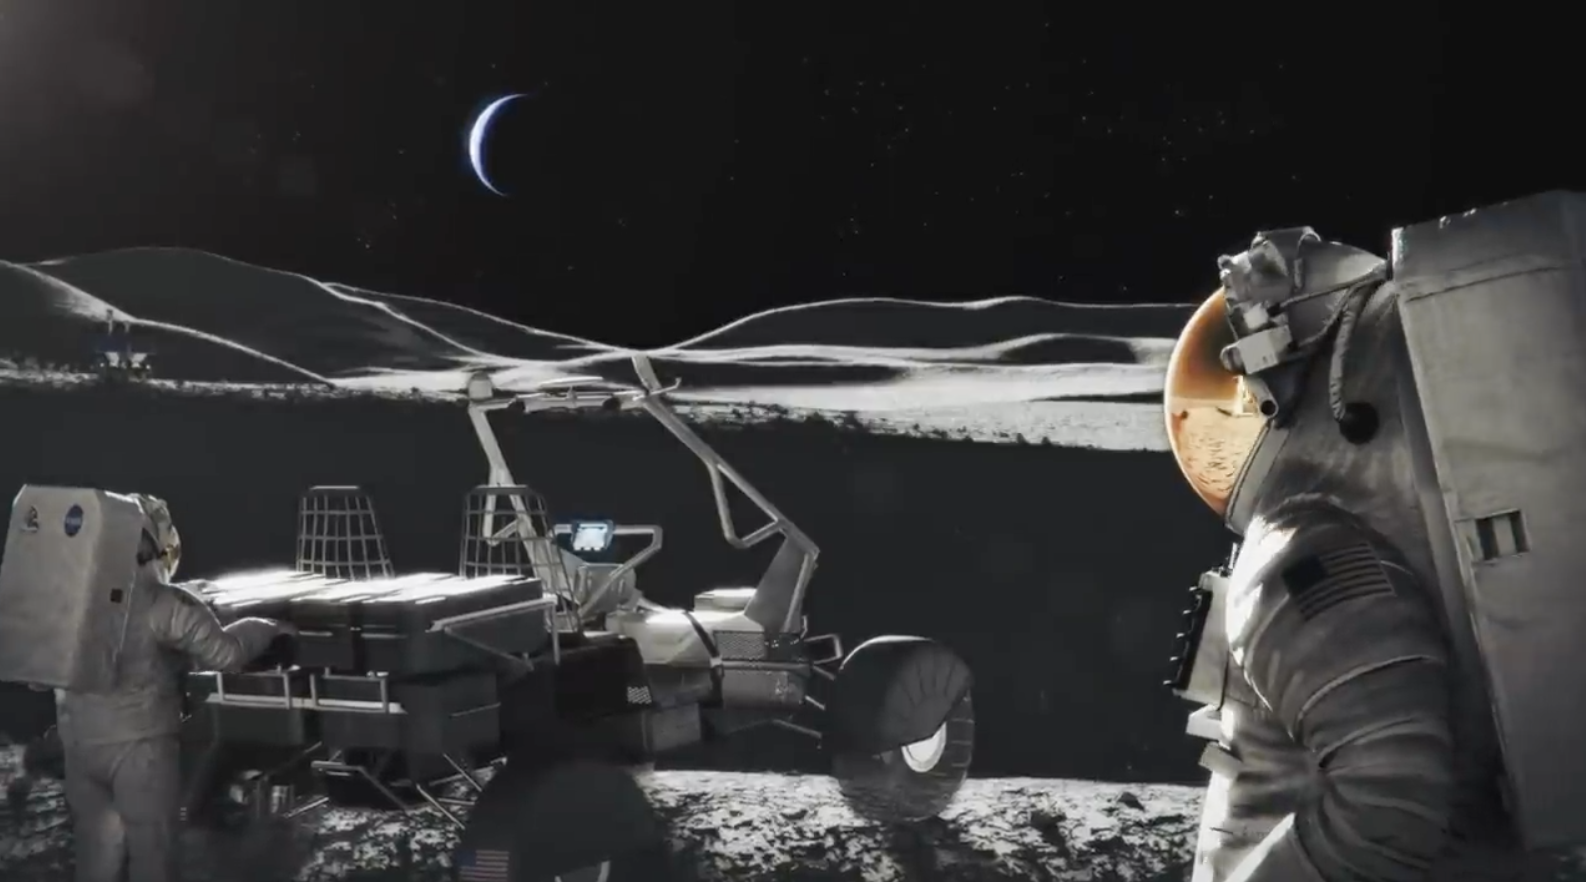 Astronauts, next to the lunar module, on a stark lunar surface, and the earth is in the sky.